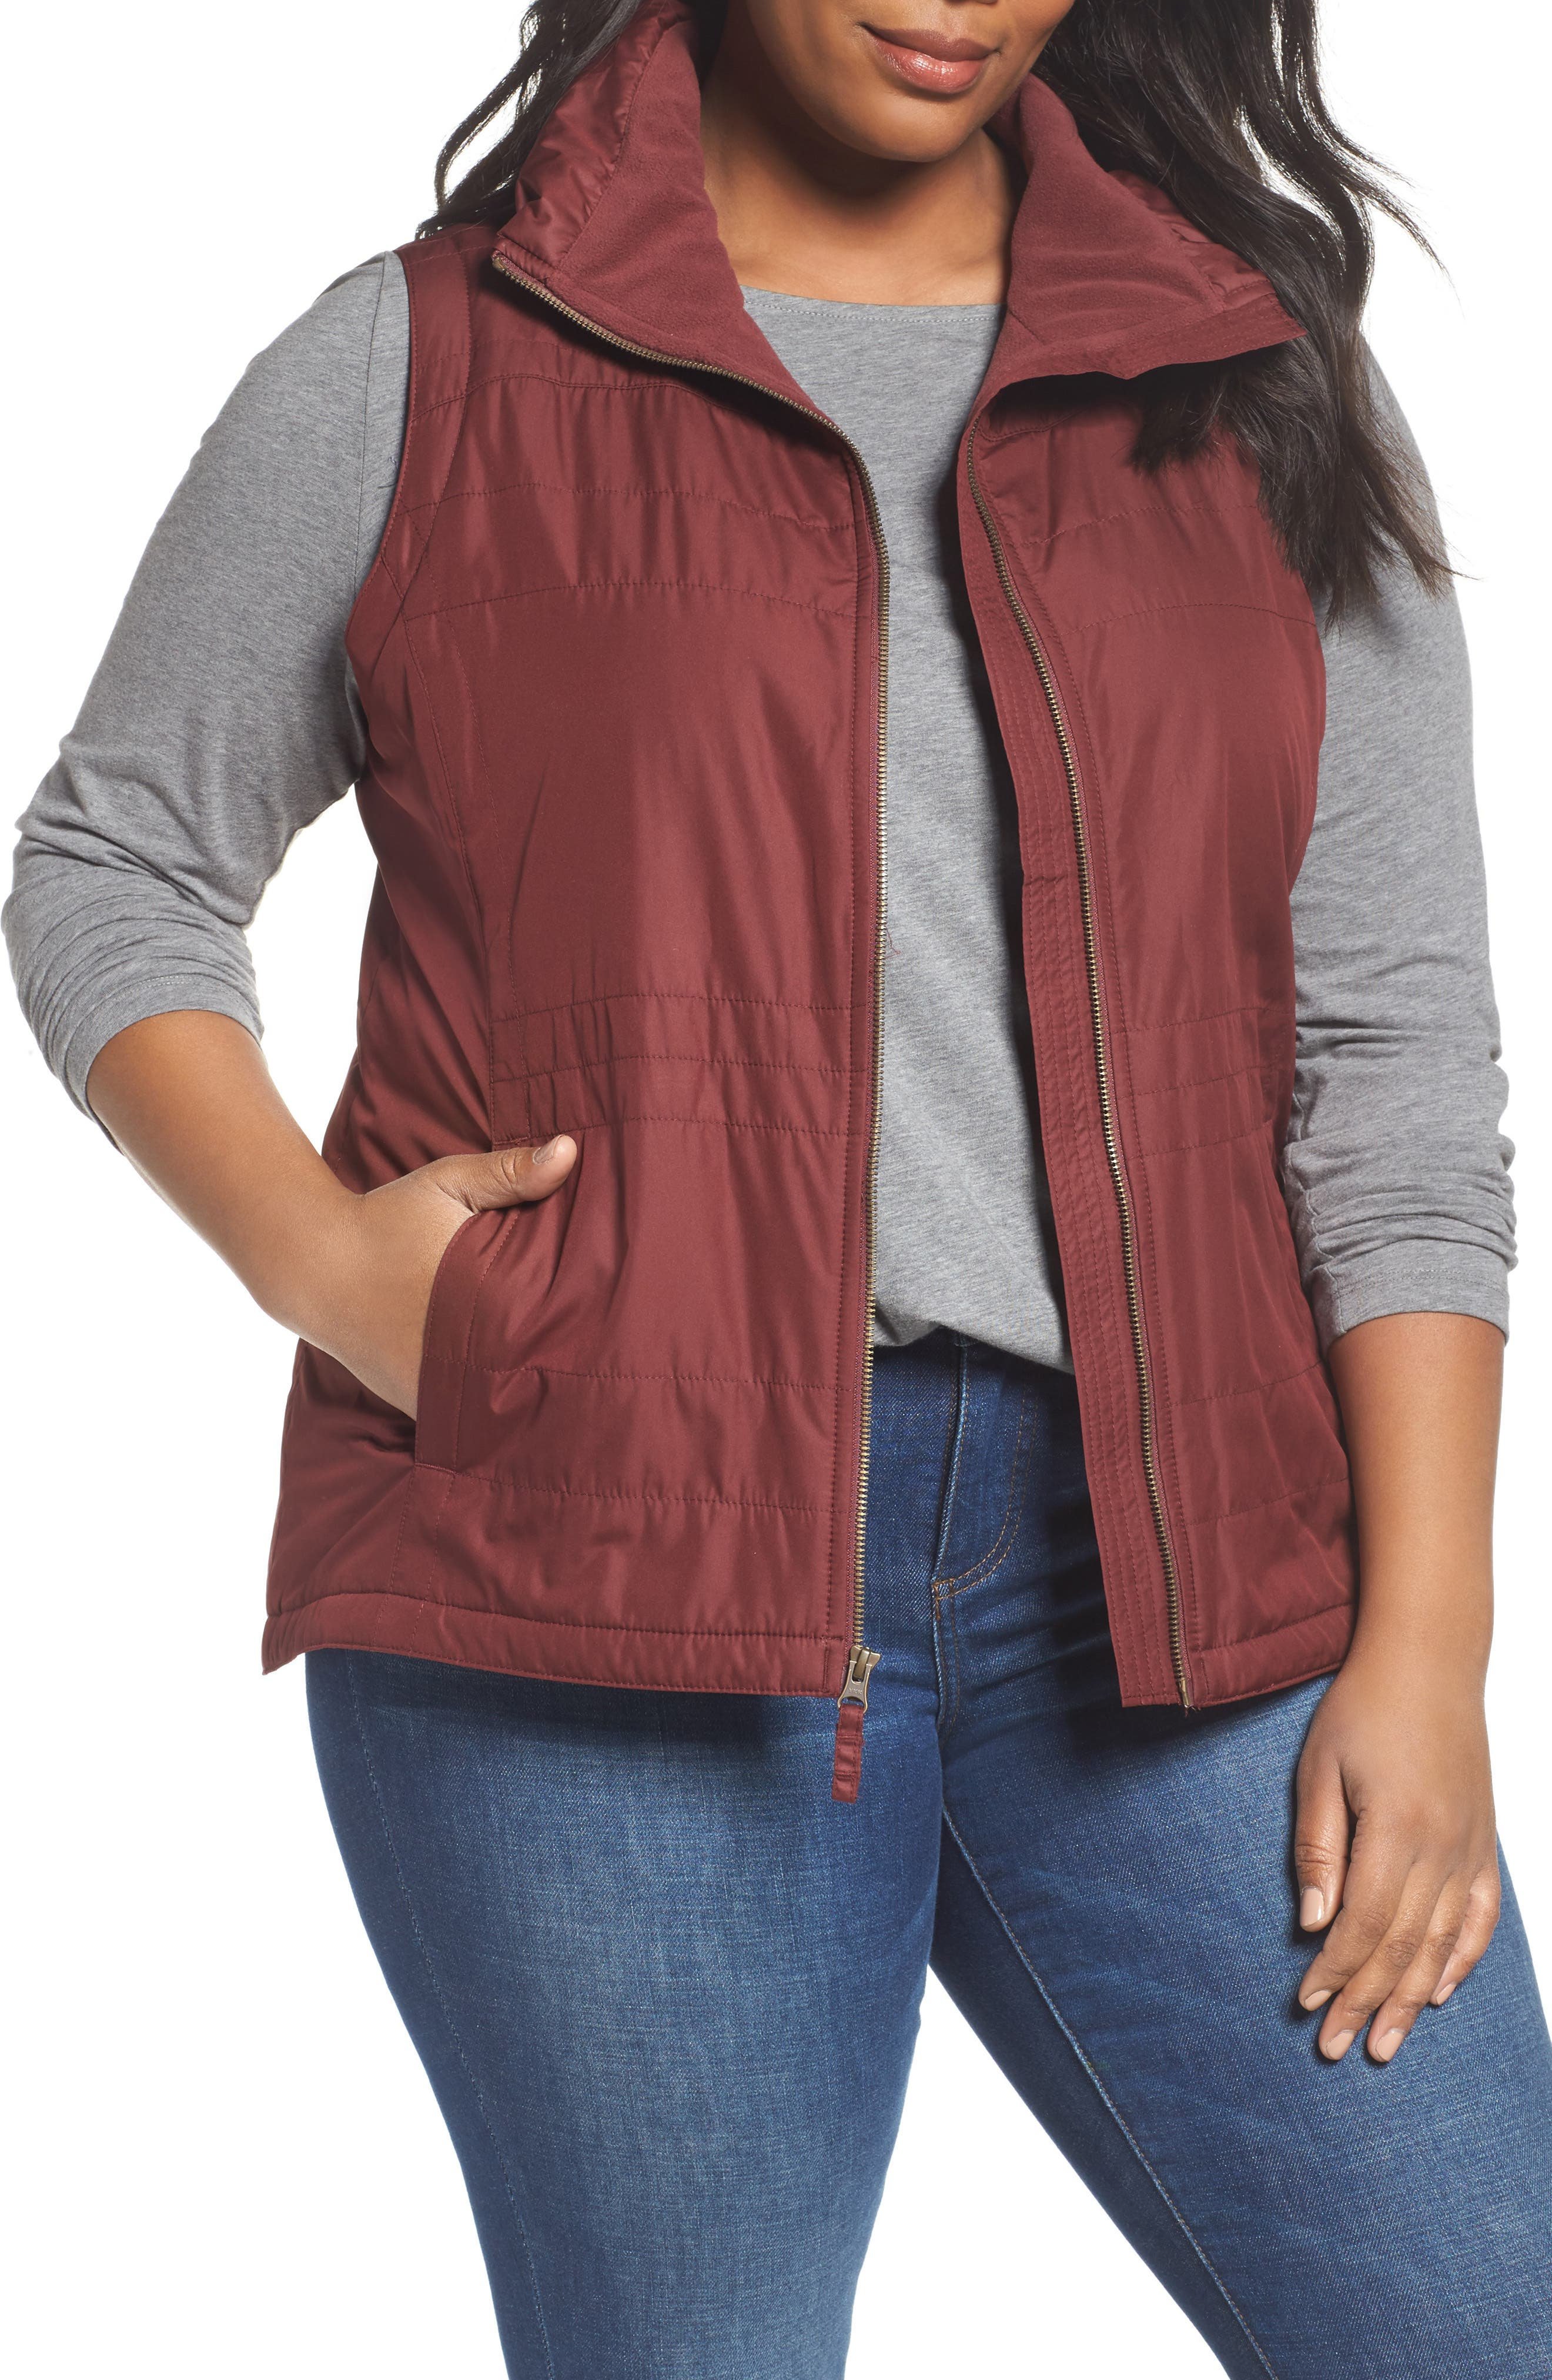 Alternate Image 1 Selected - Columbia Shining Light II Quilted Vest (Plus Size)